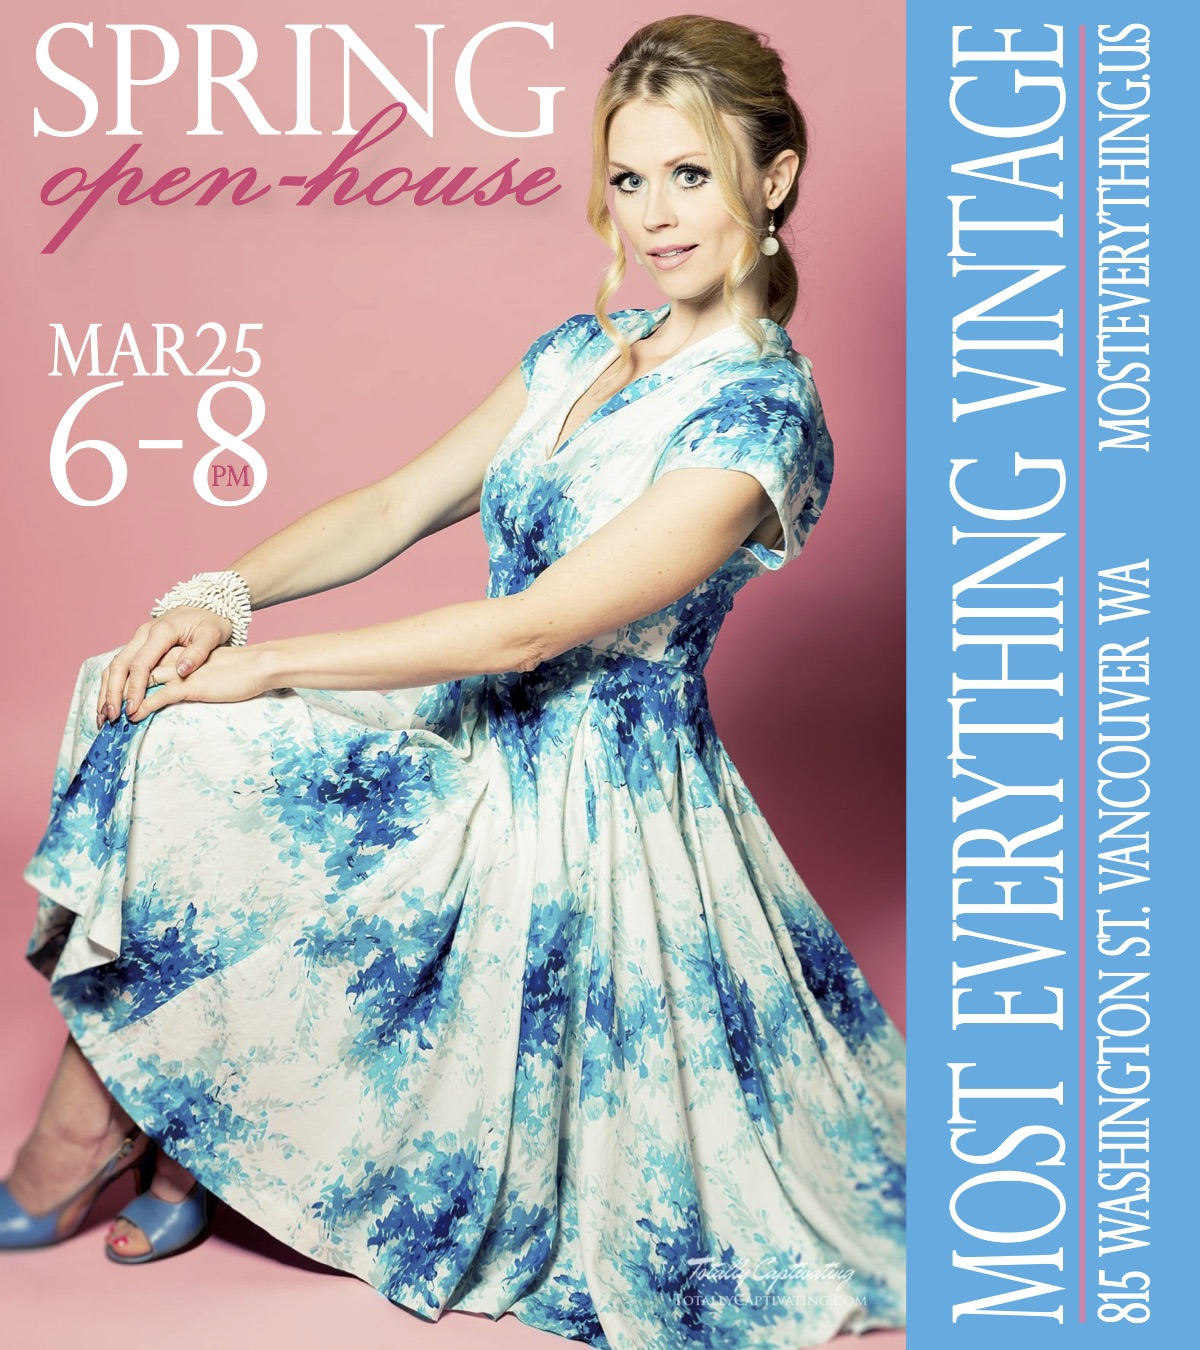 Spring is coming…. let'scelebrate